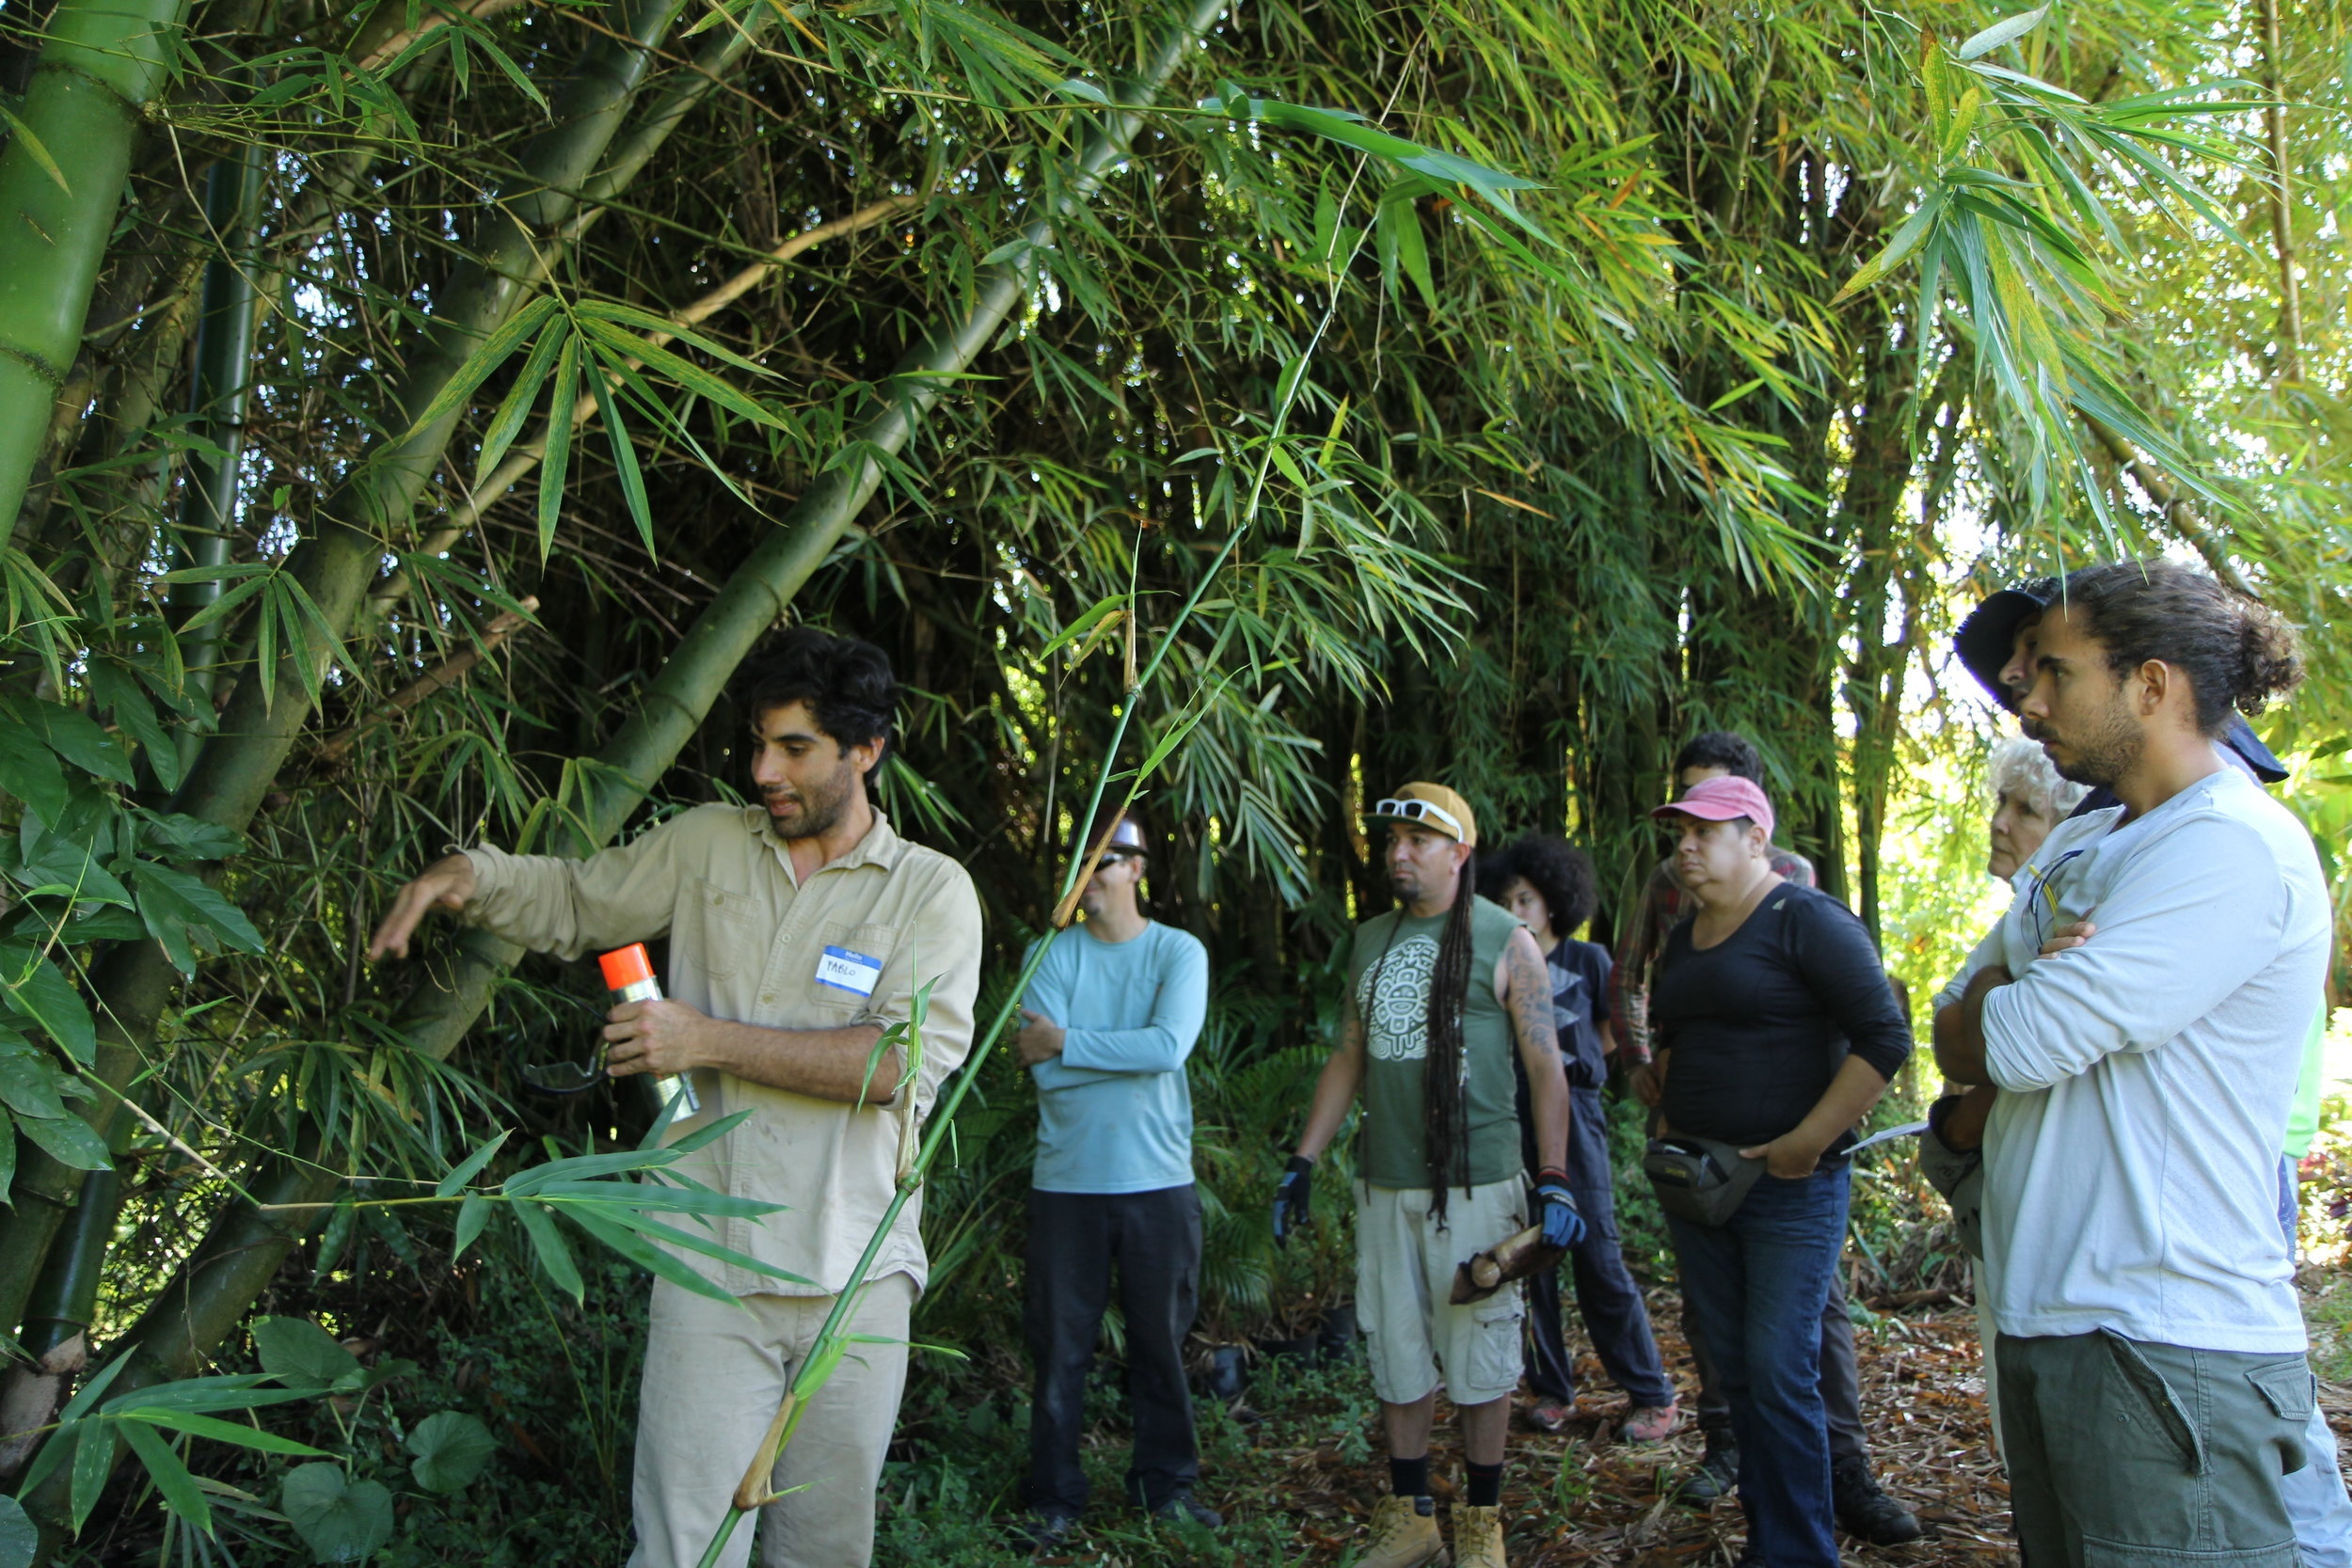 Instructors Pablo Acevedo from Bambú Pueblo and Claudio Maxwell from Memeplex Design teach a group of participants how to identify and harvest bambú for different purposes.